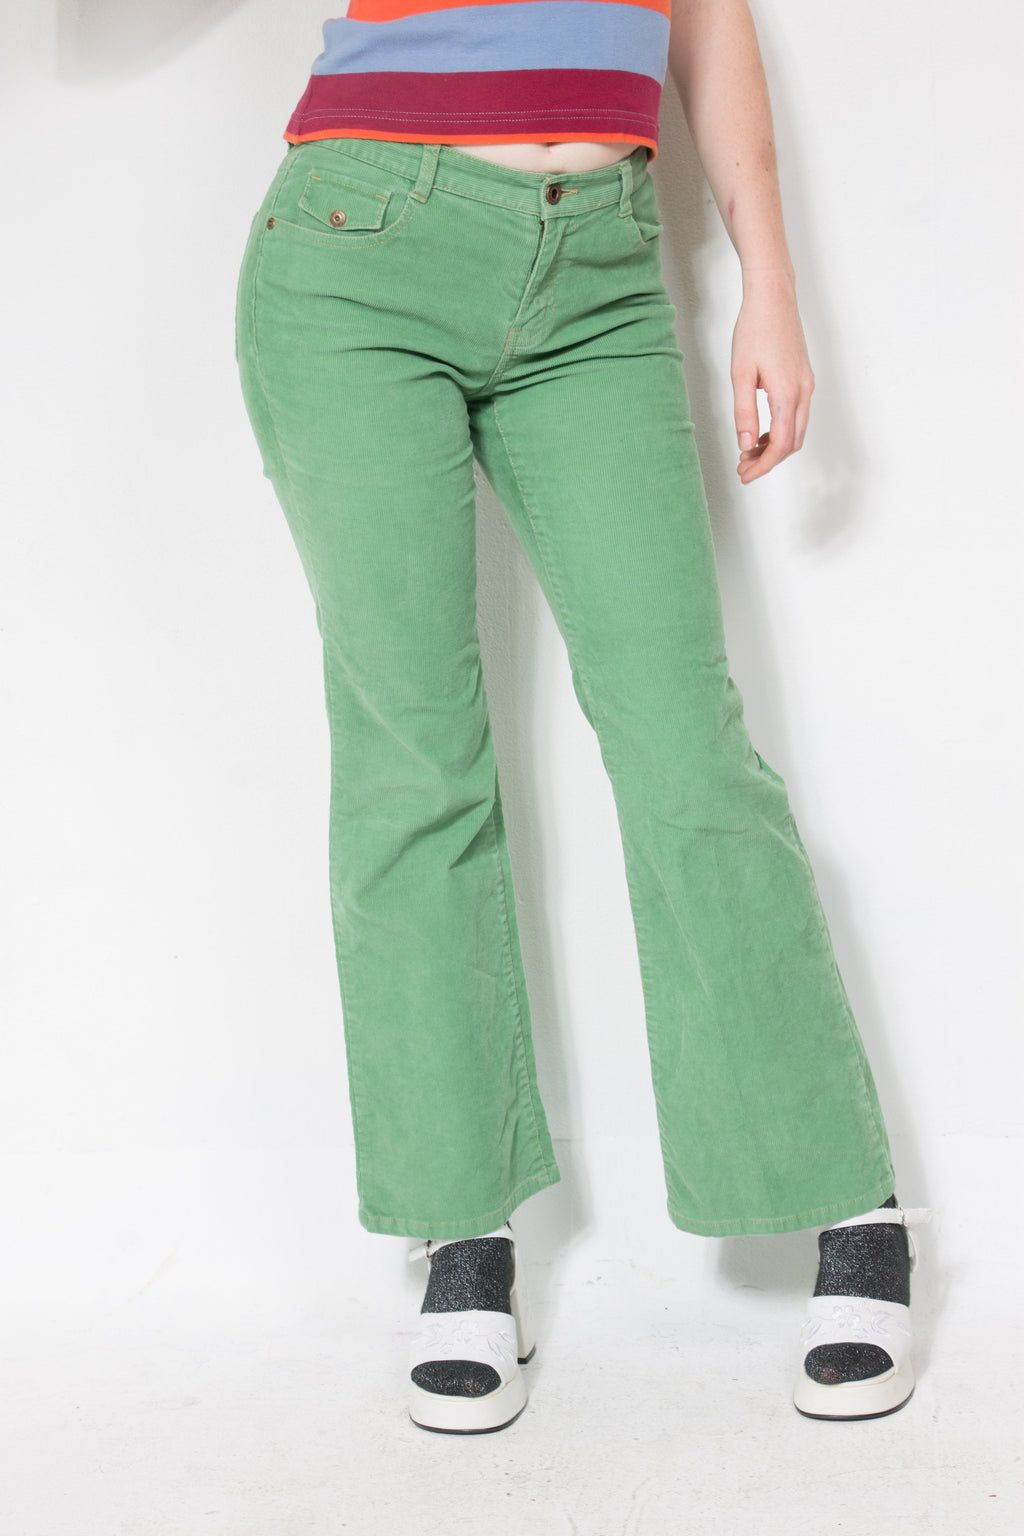 00's Mint Corduroy Pants